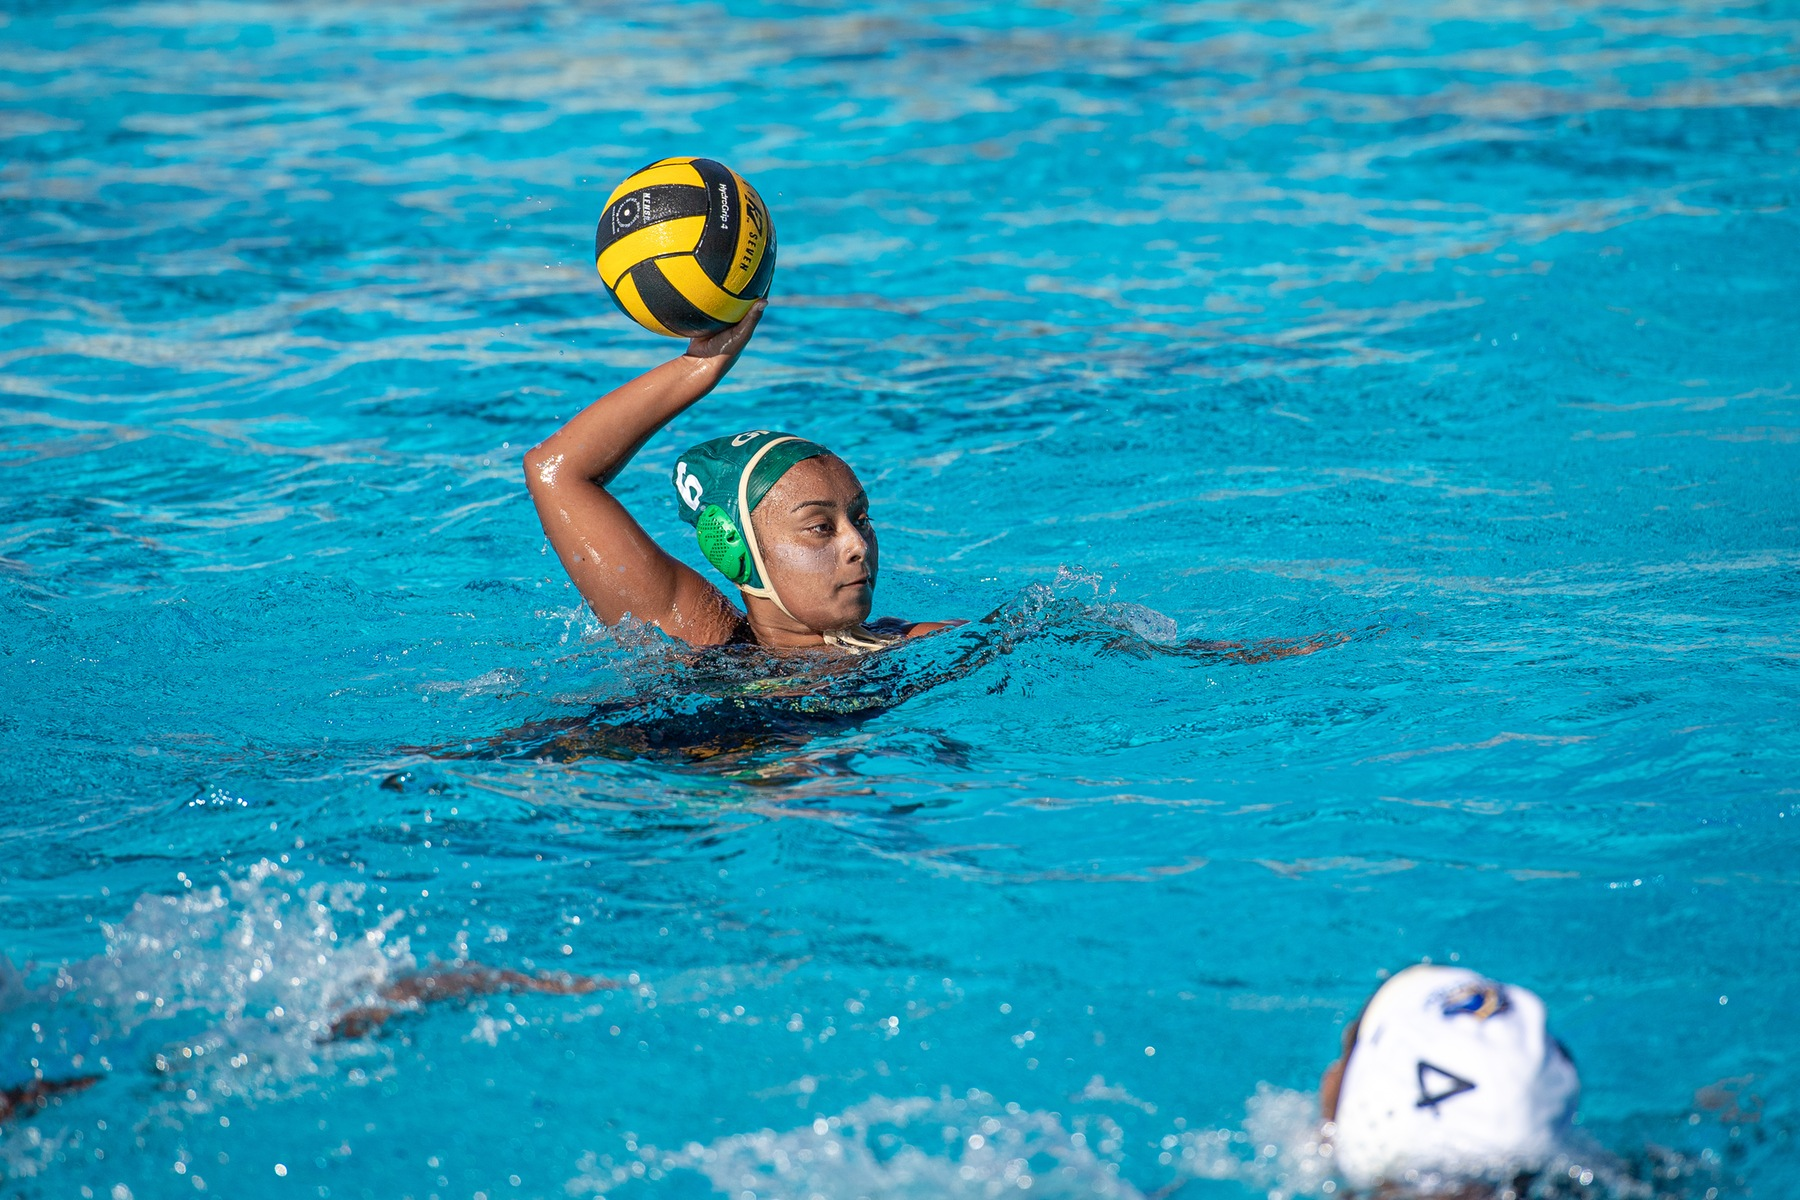 W Water Polo: Dominates in Near Shutout Win